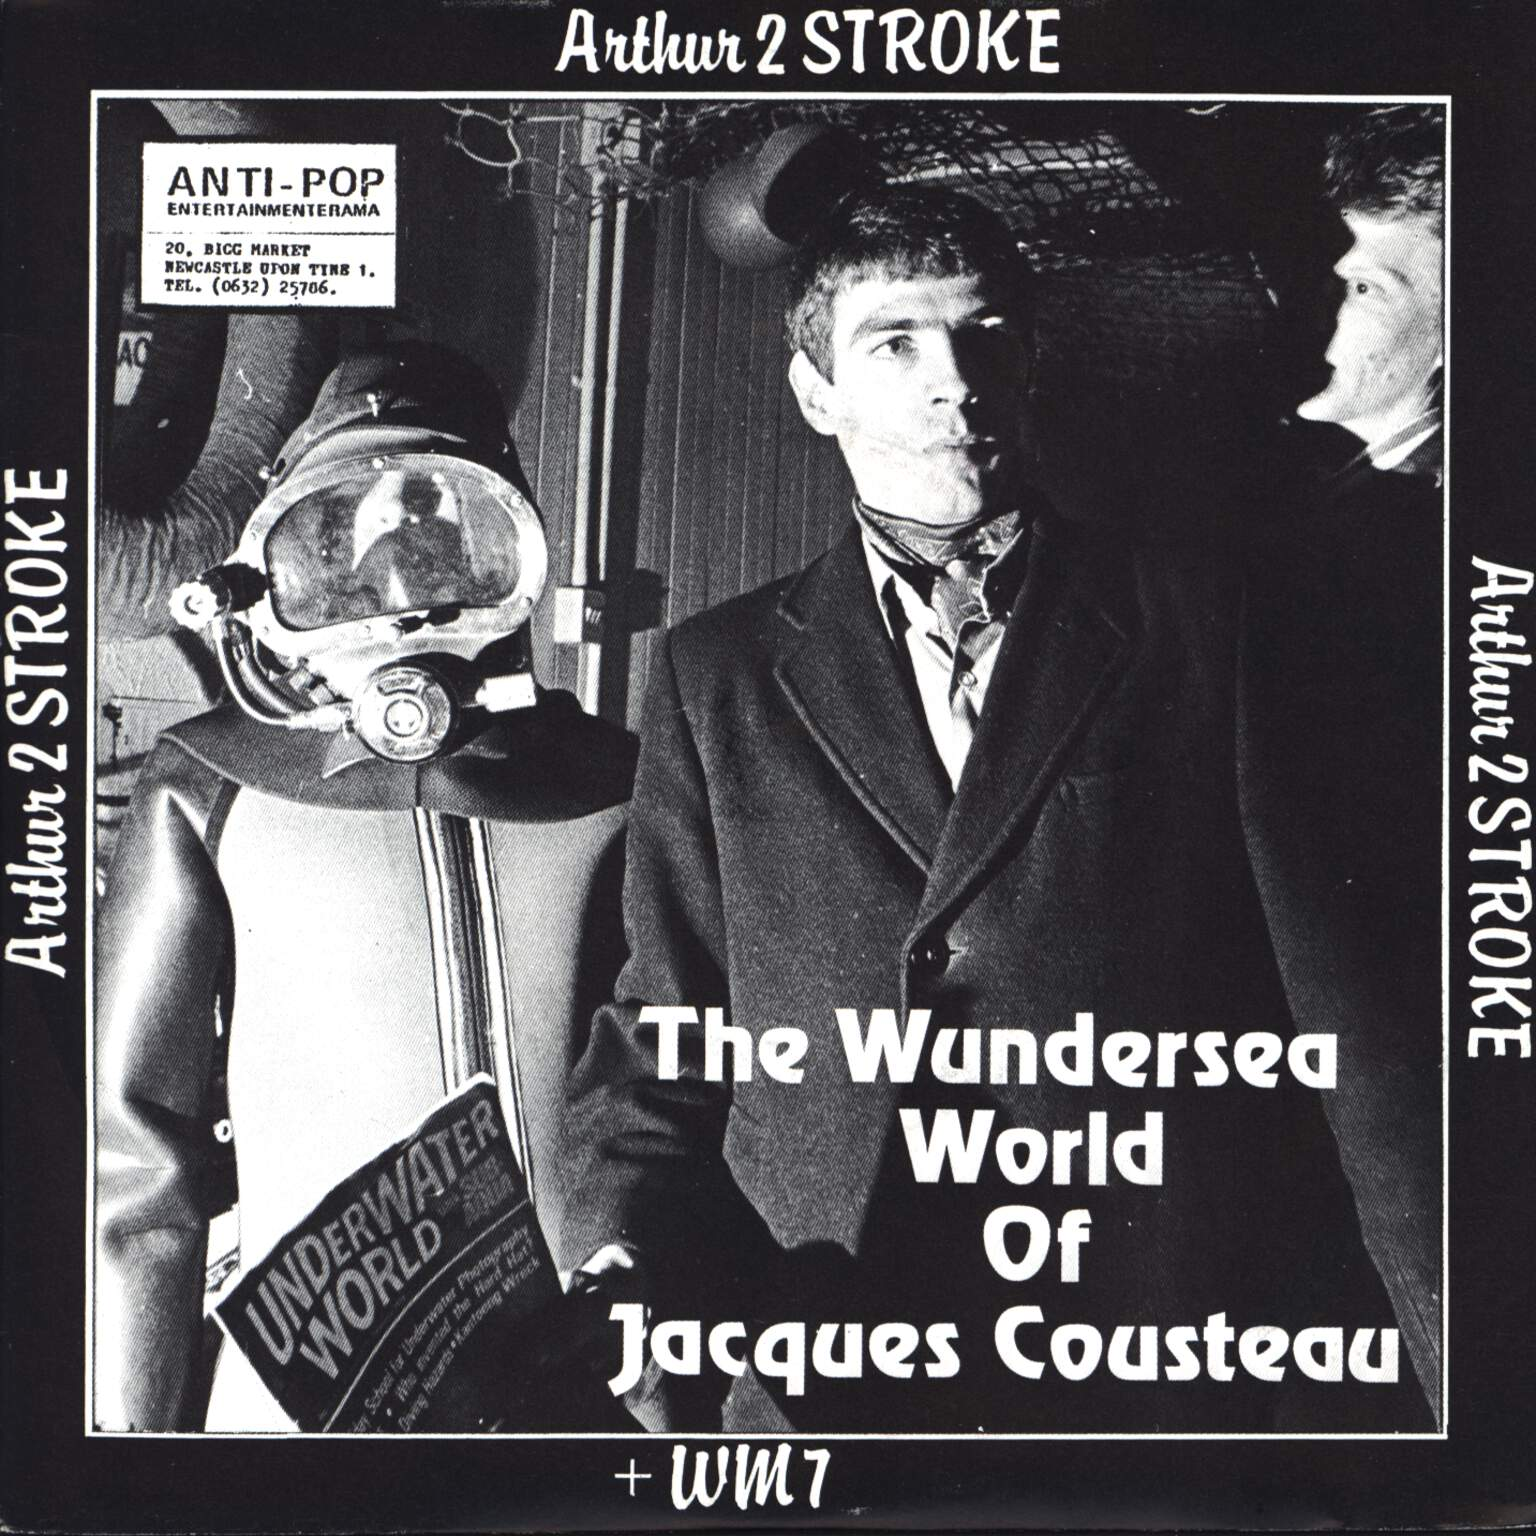 "Arthur 2 Stroke + WM7: The Wundersea World Of Jacques Cousteau / Pocket Money, 7"" Single (Vinyl)"